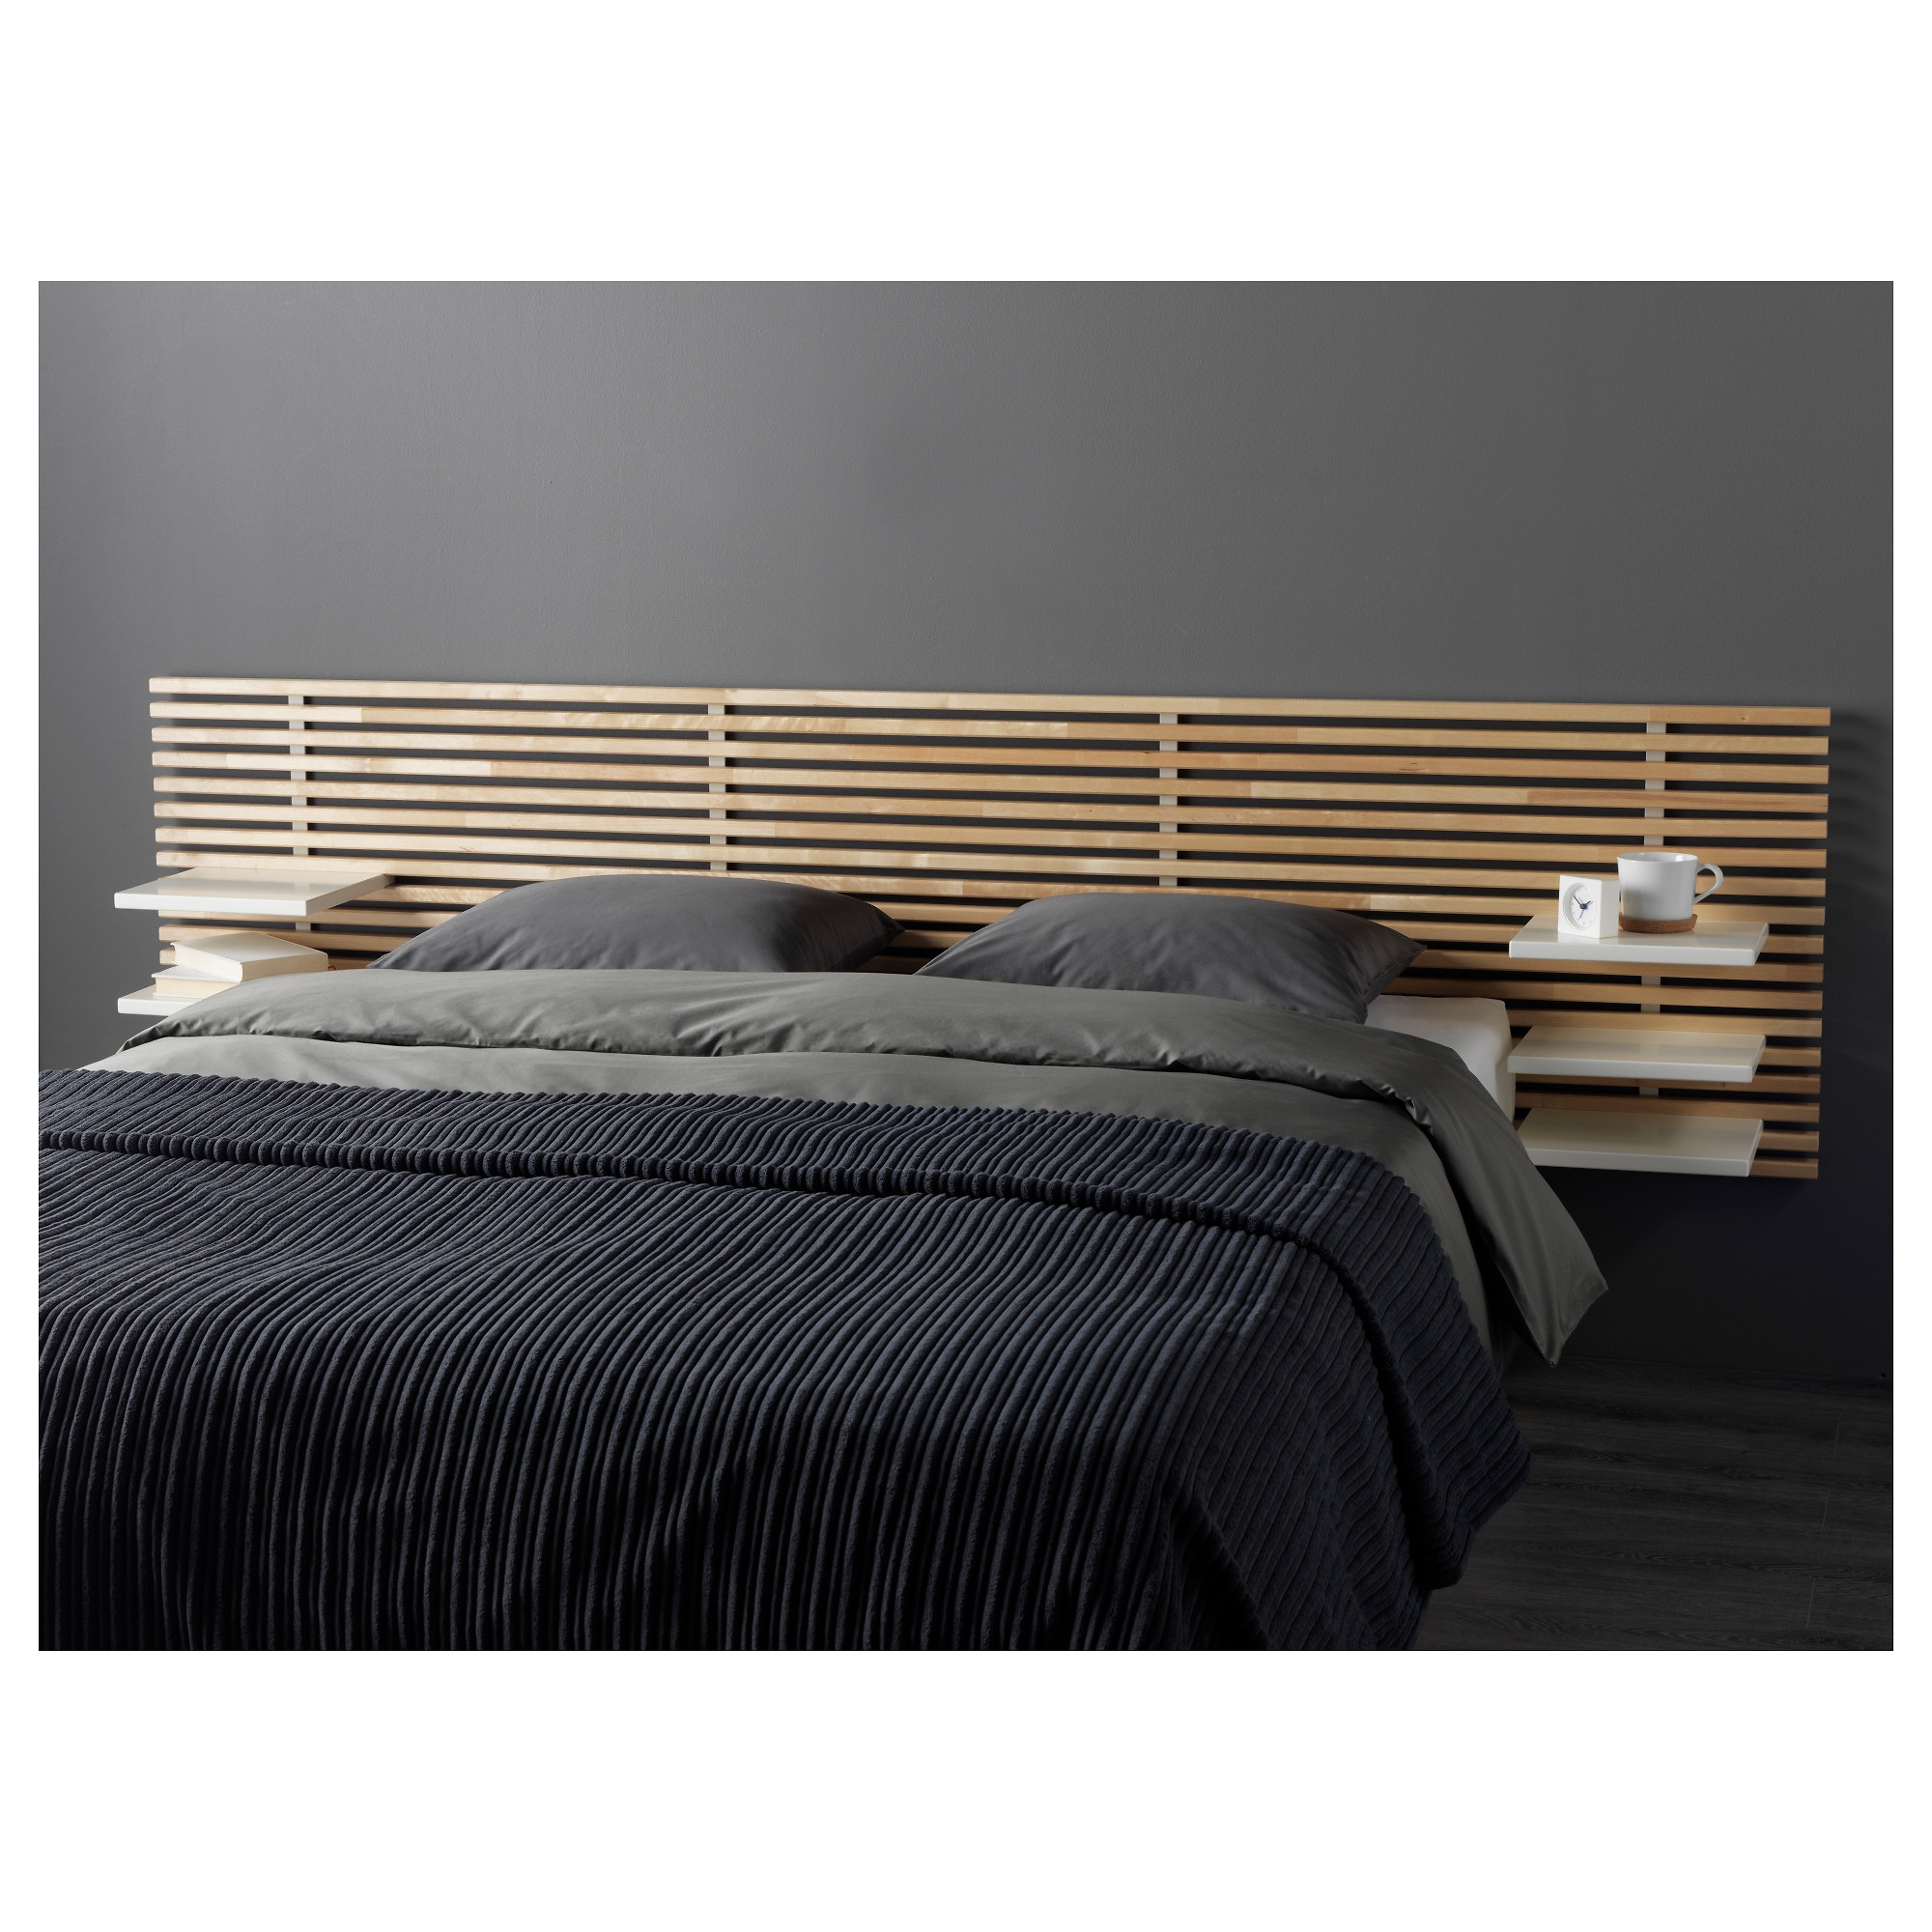 tete de lit en carton de lit orchide chocolat achat vente tte de lit tte de lit ma tte de lit. Black Bedroom Furniture Sets. Home Design Ideas